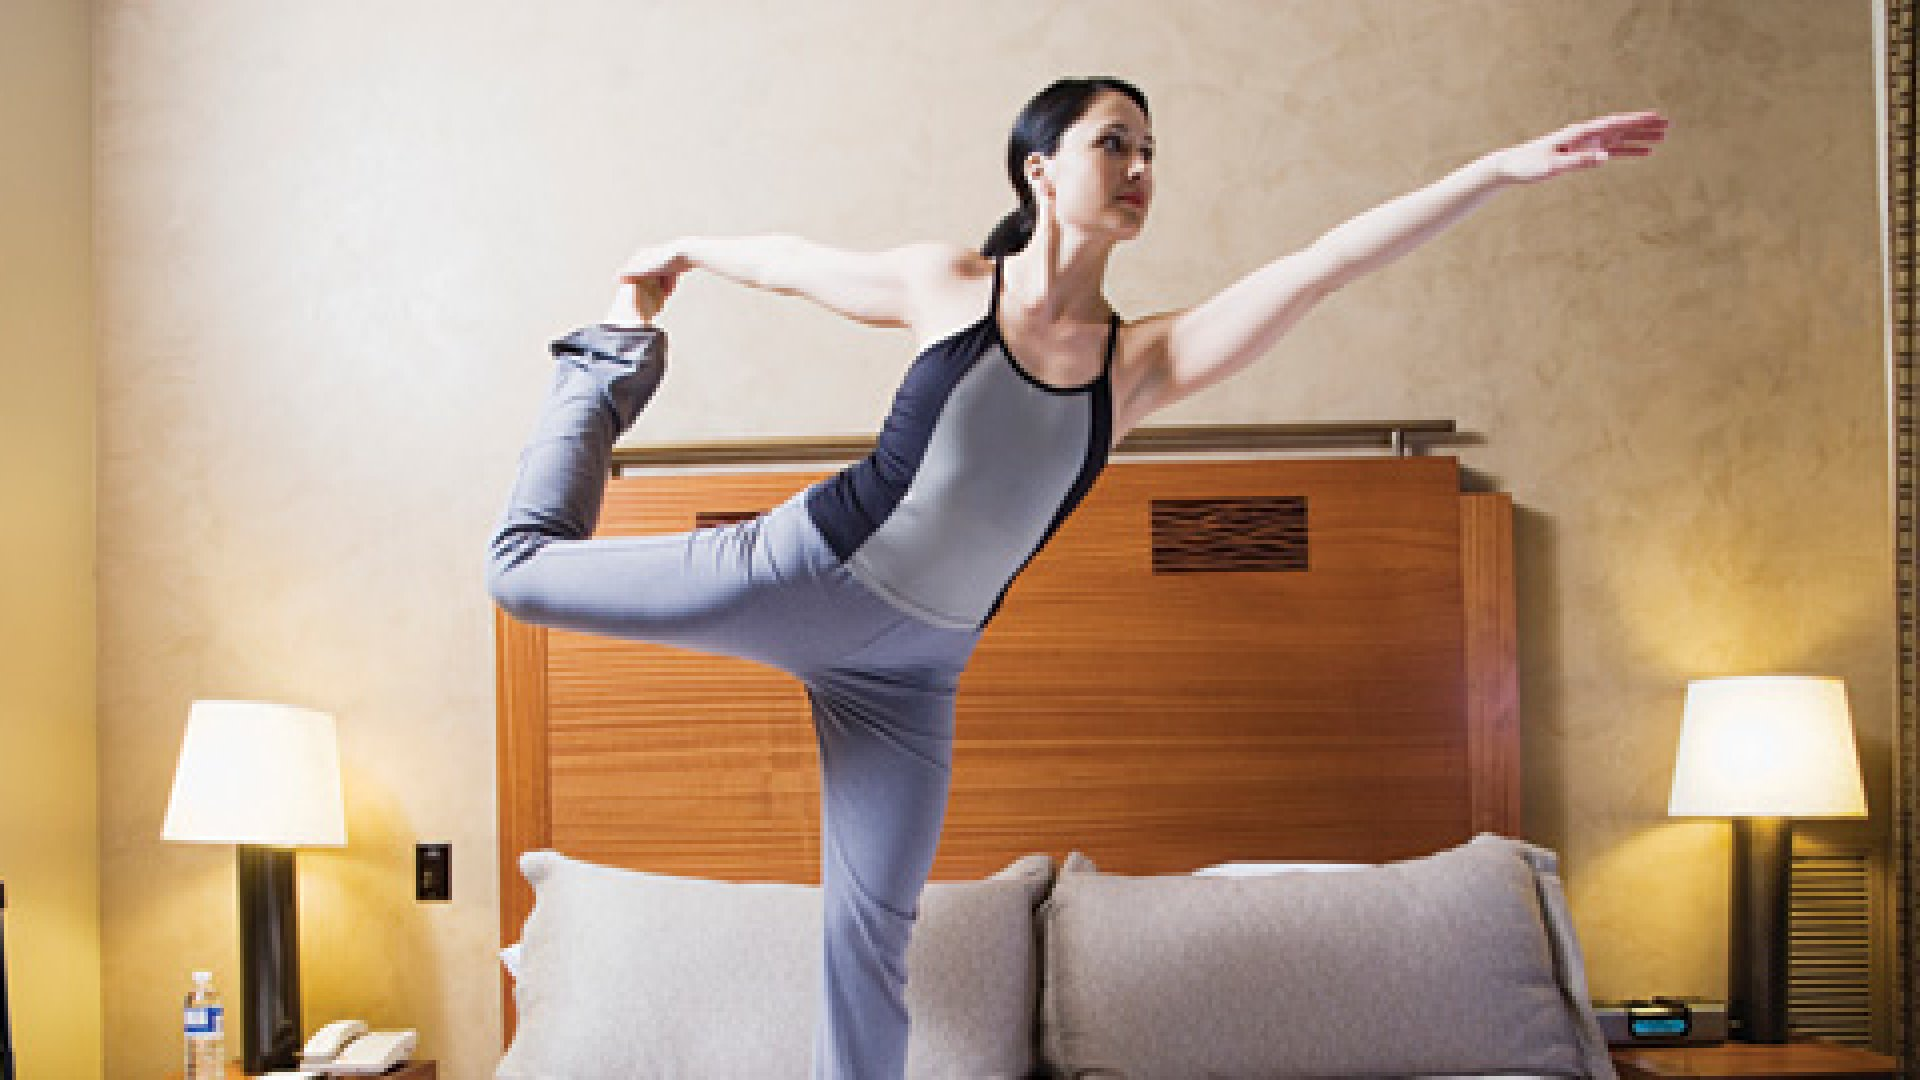 <strong>Gymboree:</strong> You may be more likely to stick with a routine if you work out in the privacy of your hotel room.